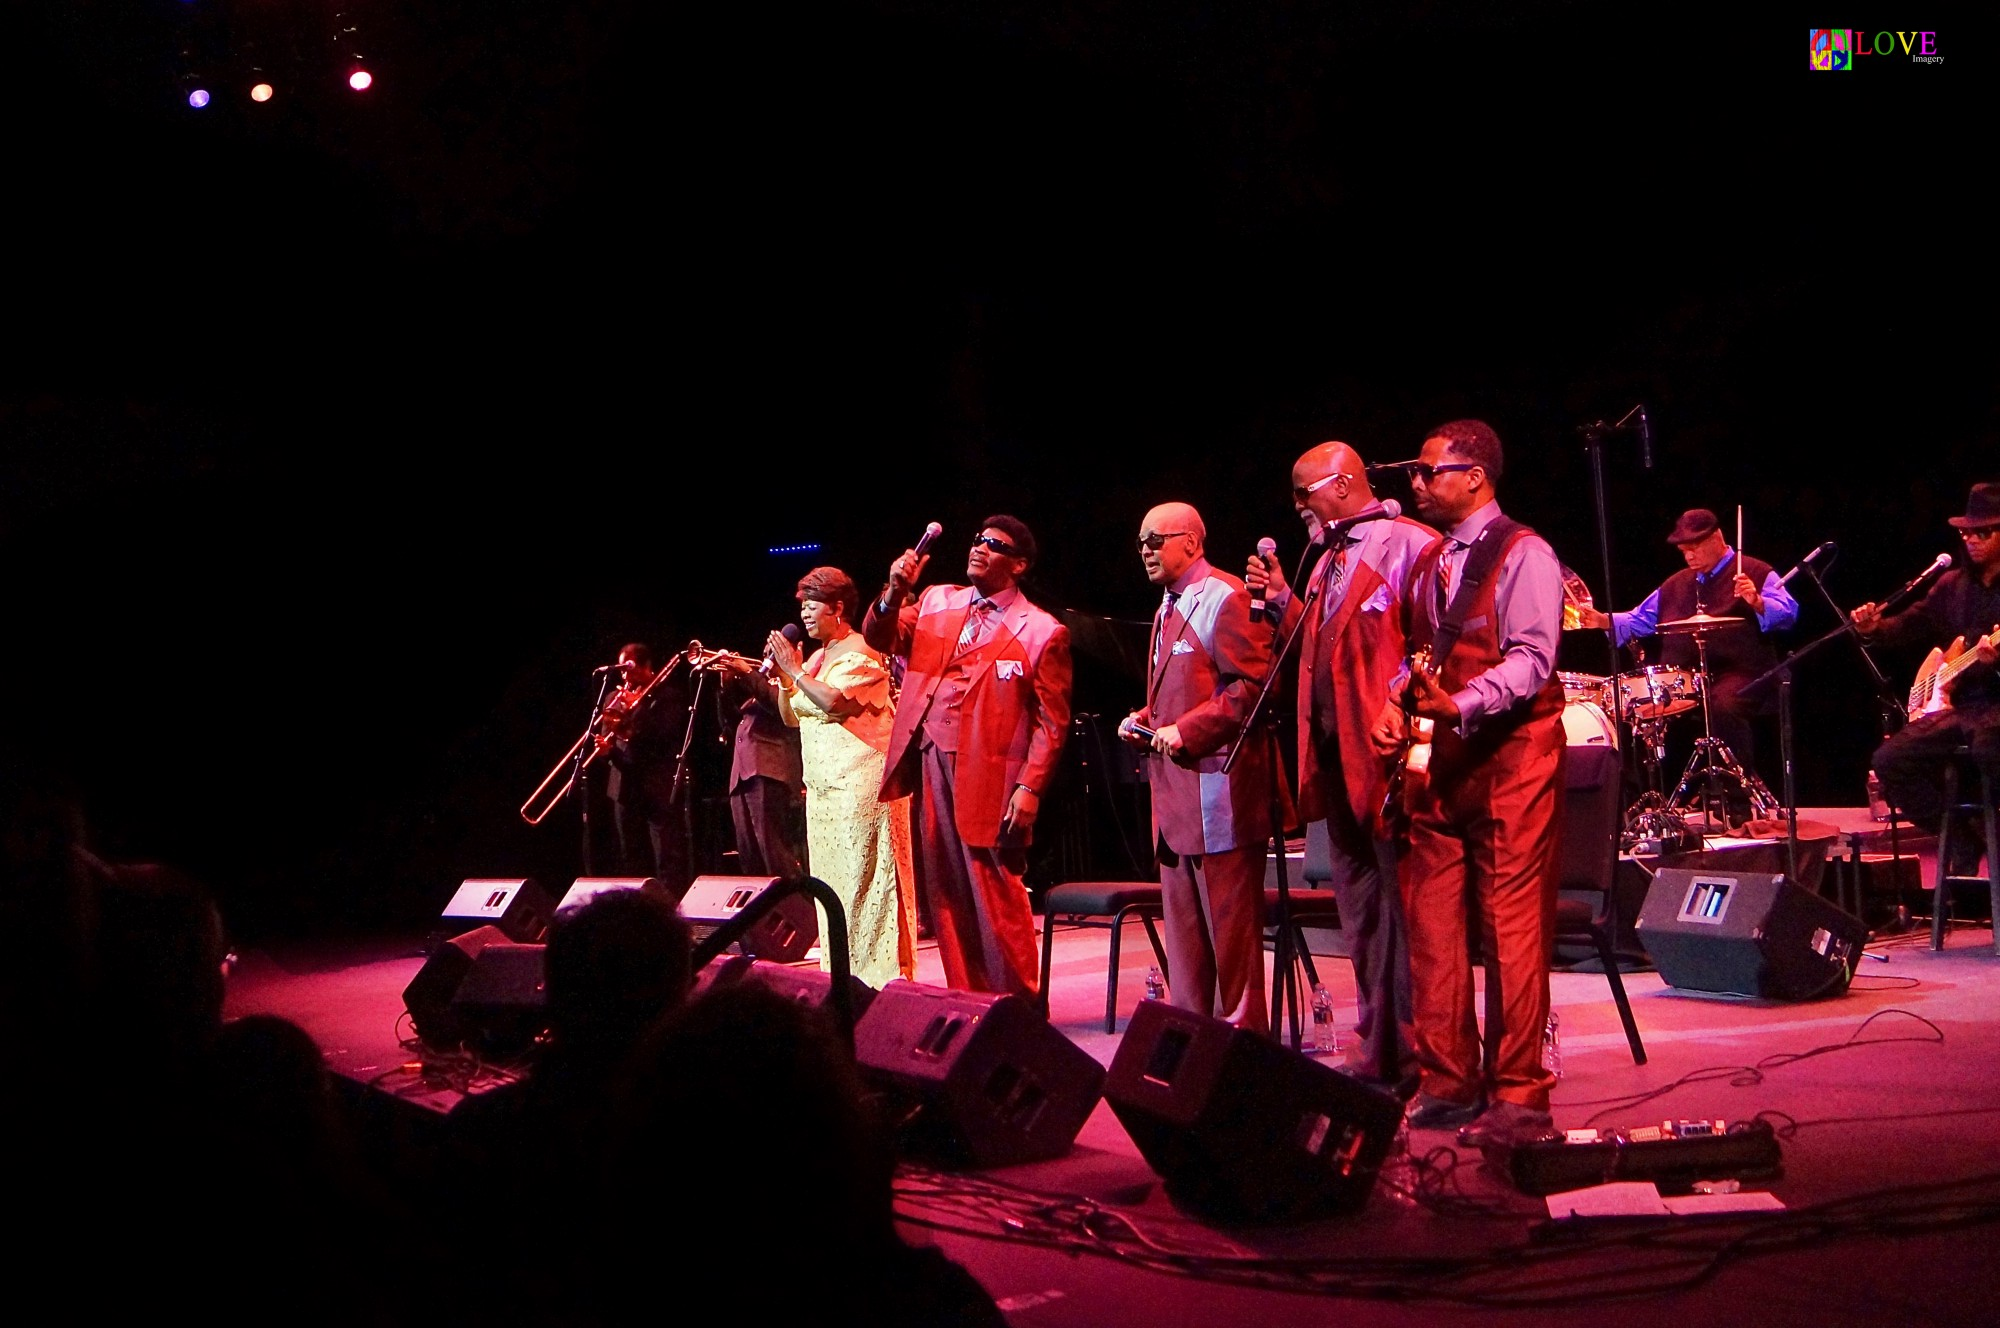 Irma Thomas The Blind Boys of Alabama and the Preservation Hall